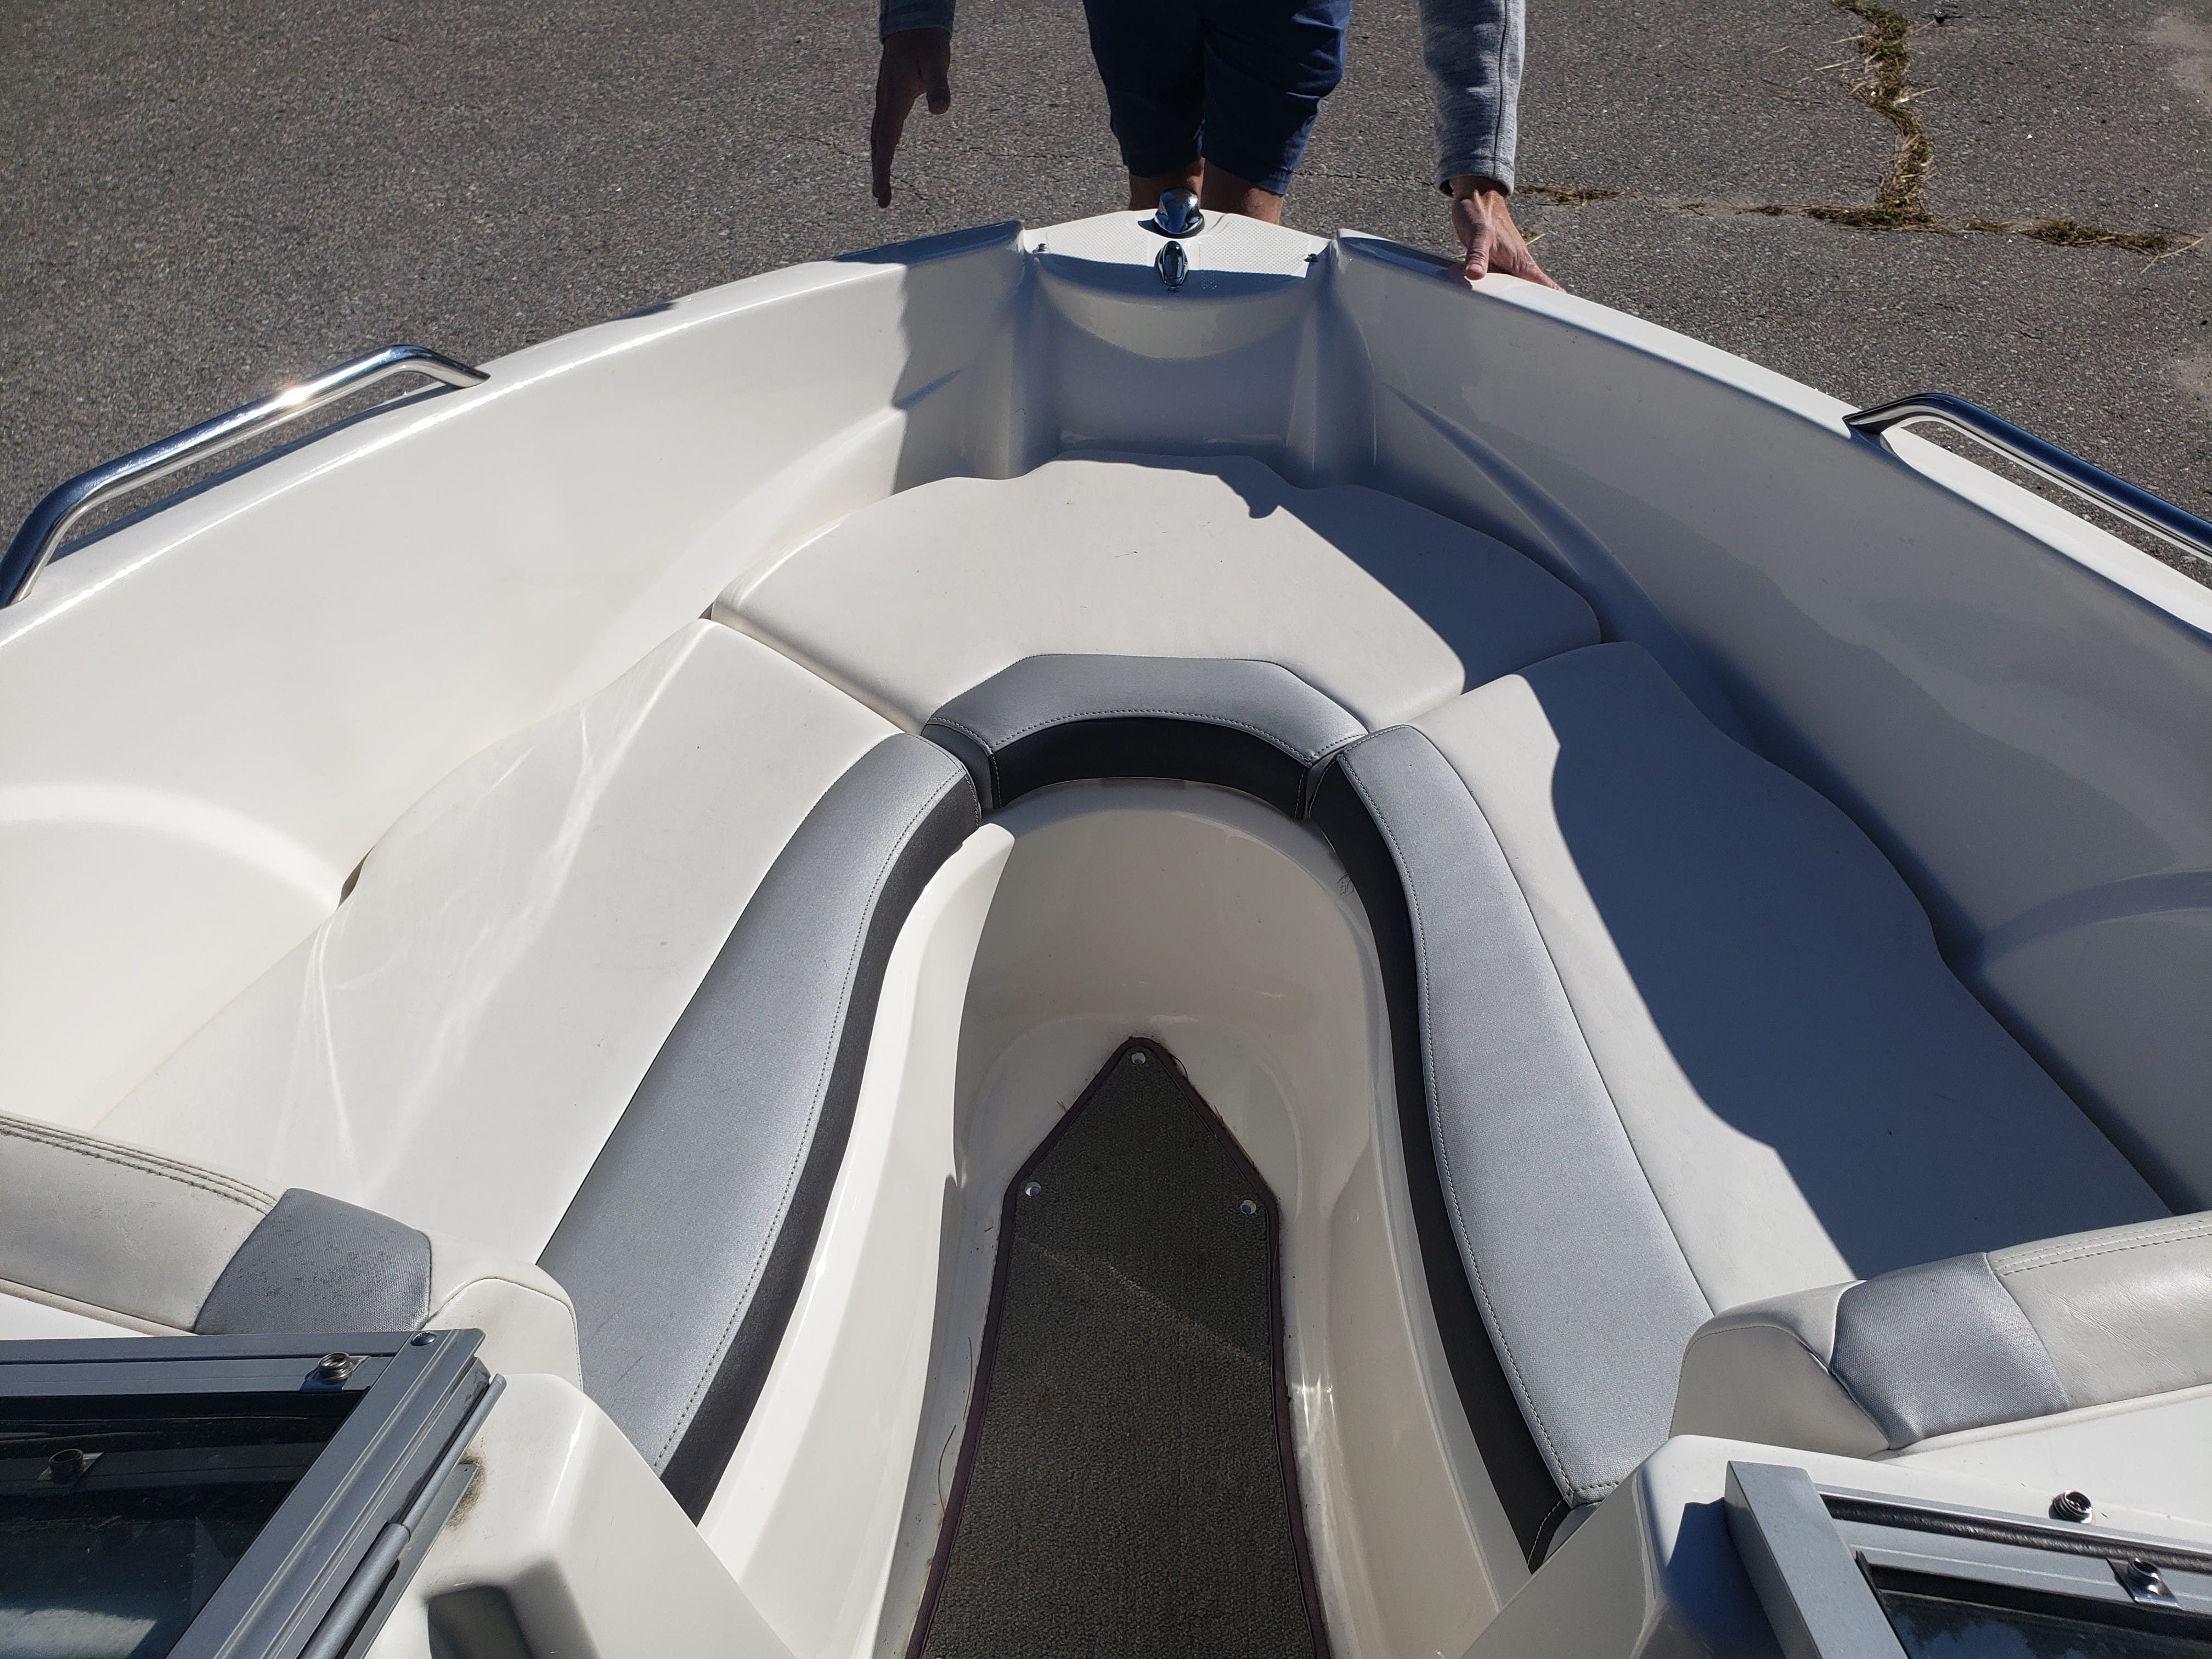 2014 Larson boat for sale, model of the boat is LX 195 S & Image # 3 of 10